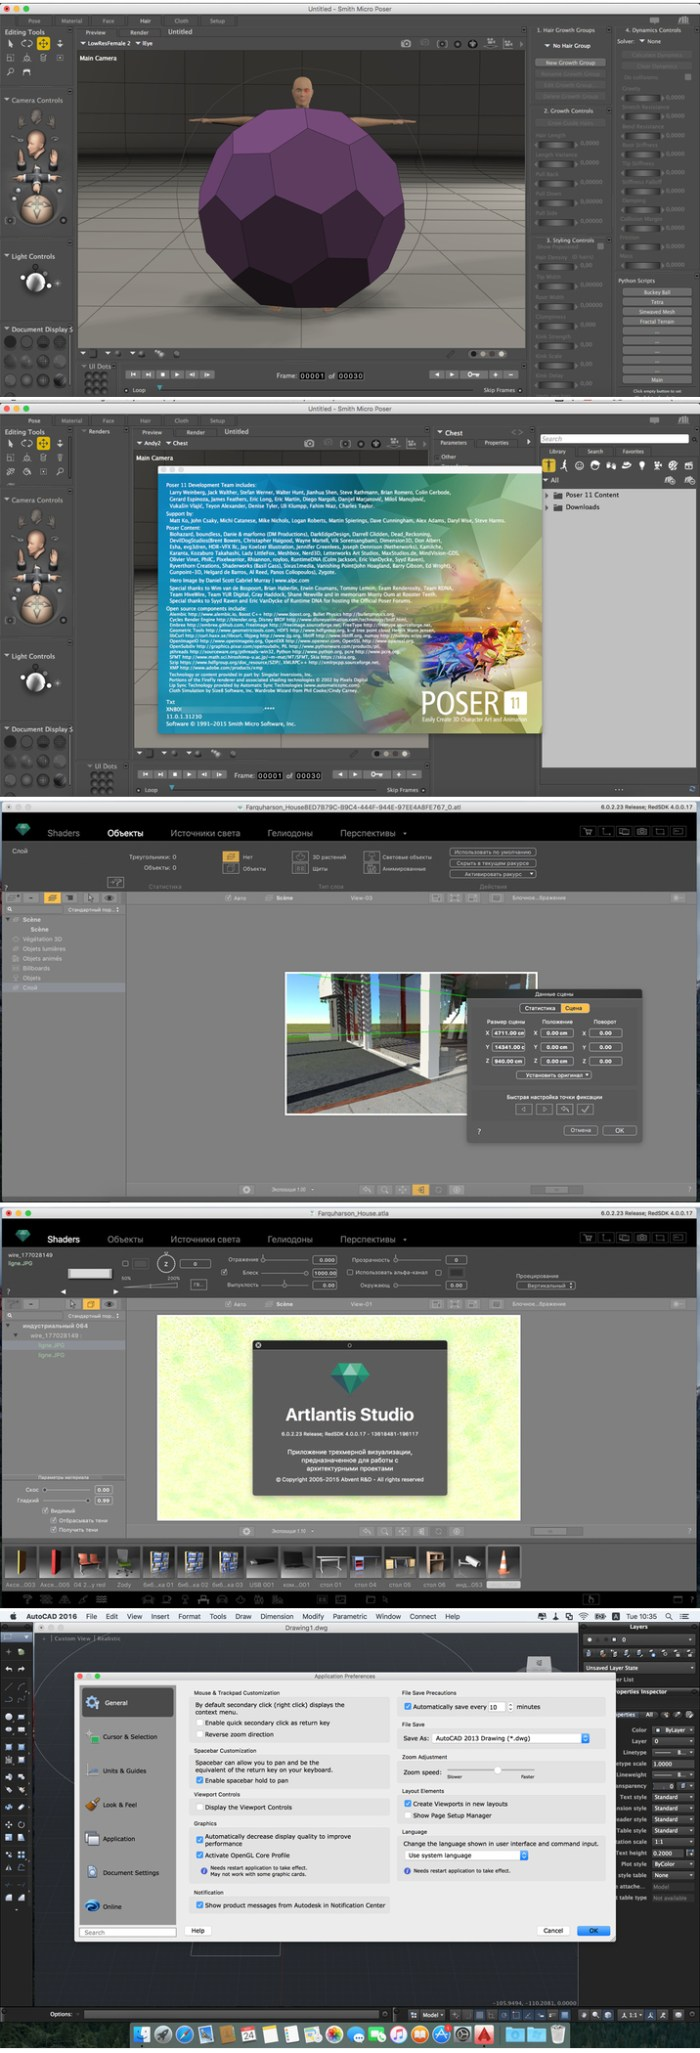 cad_3d_software_for_professionals_21_02_2016_autodesk_autocad_2016_for_mac__smith_micro_poser…_cap